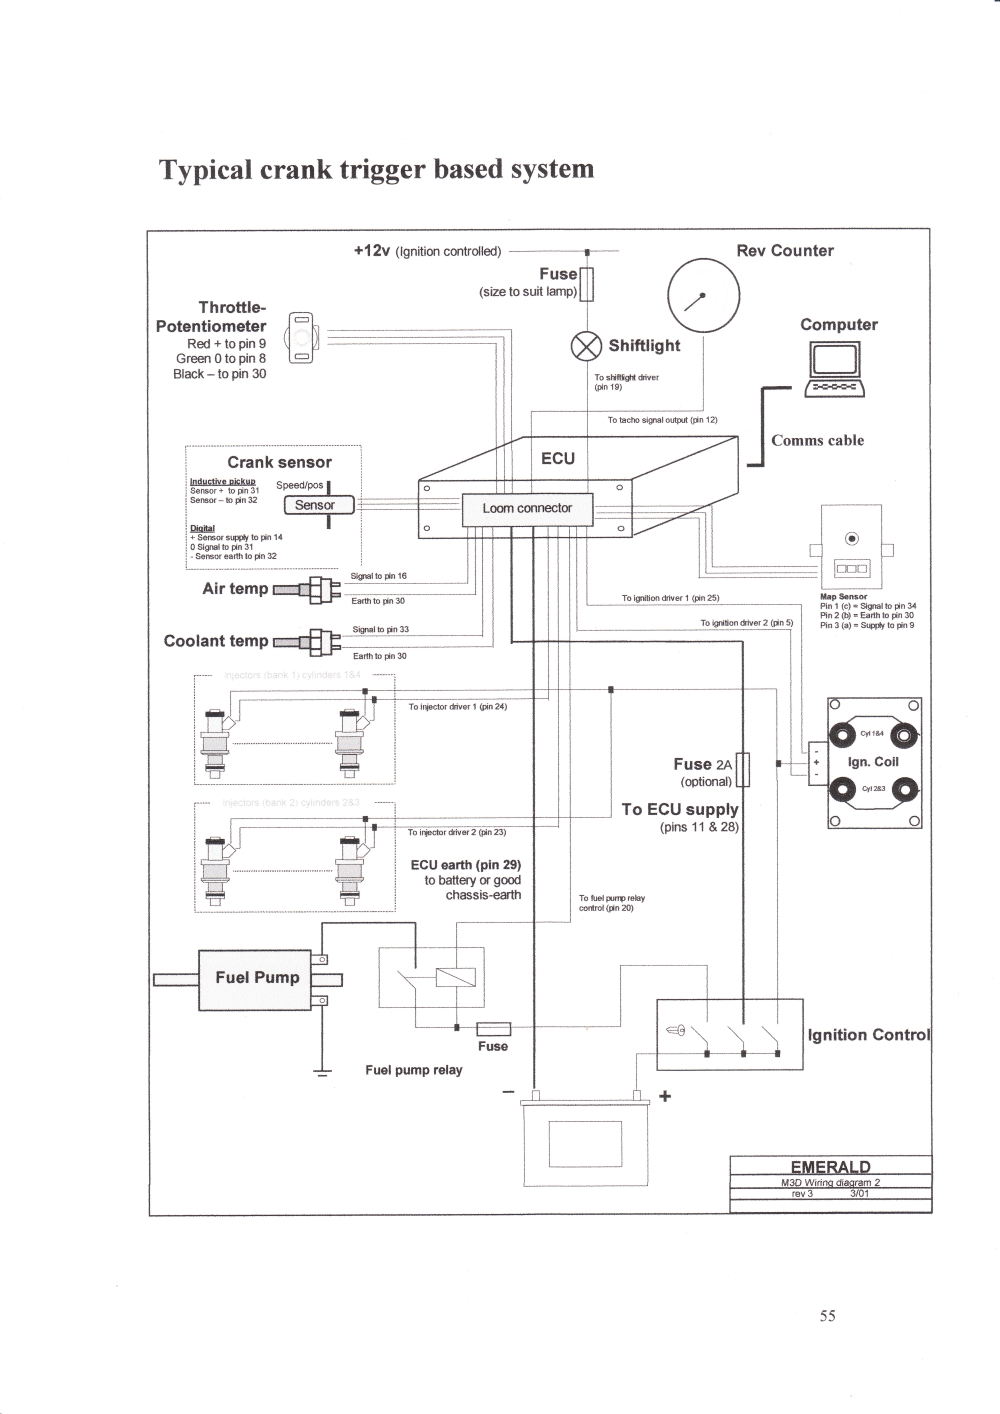 201203022025639669ECU wiring emerald k6 wiring diagram electrical wiring diagrams \u2022 wiring Residential Electrical Wiring Diagrams at virtualis.co